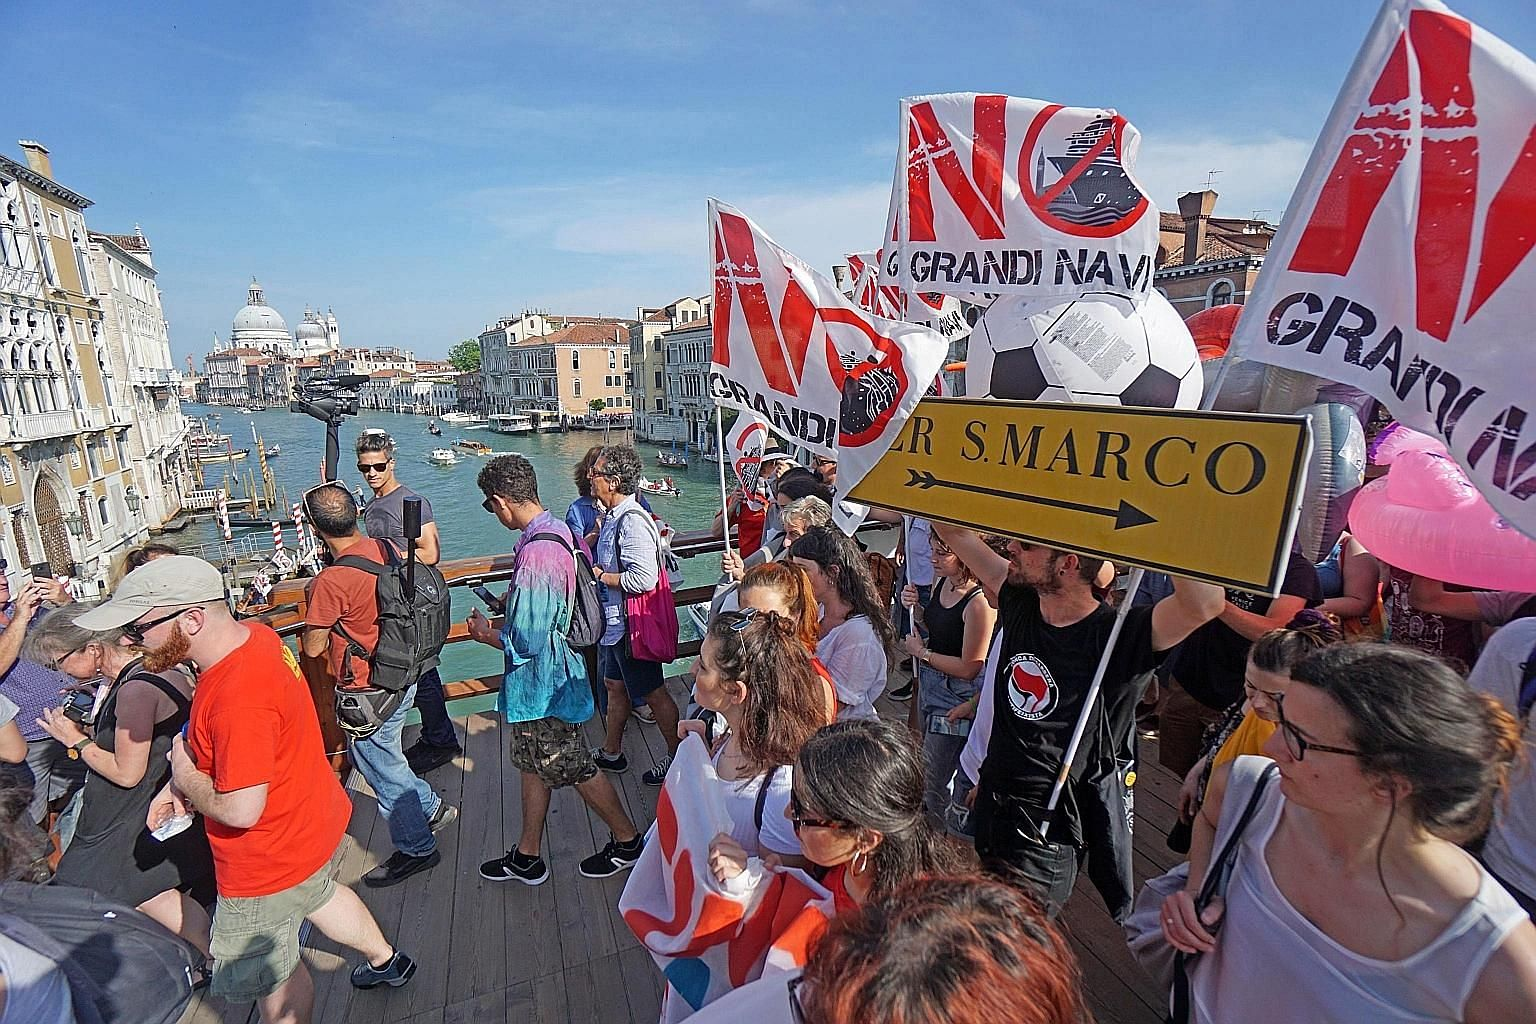 Thousands of people took to the streets in Venice last Saturday, calling for a ban on large cruise ships in the city following last week's collision between a massive vessel and a tourist boat. According to the Italian media, around 5,000 demonstrato